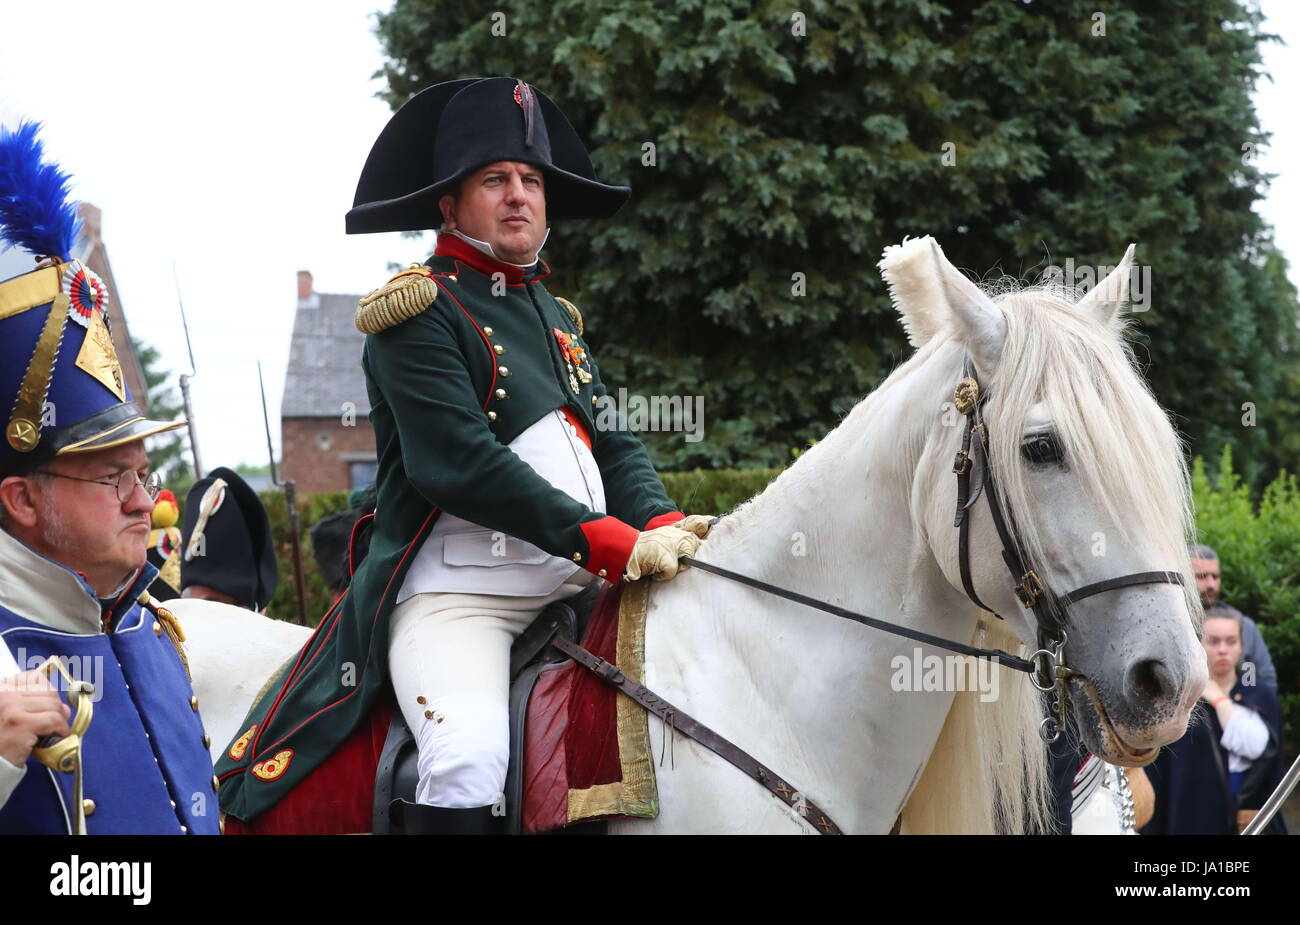 Ligny, Belgium. 3rd June, 2017. A man enacting Napoleon rides a horse during the re-enactment of the Battle of Ligny, - Stock Image